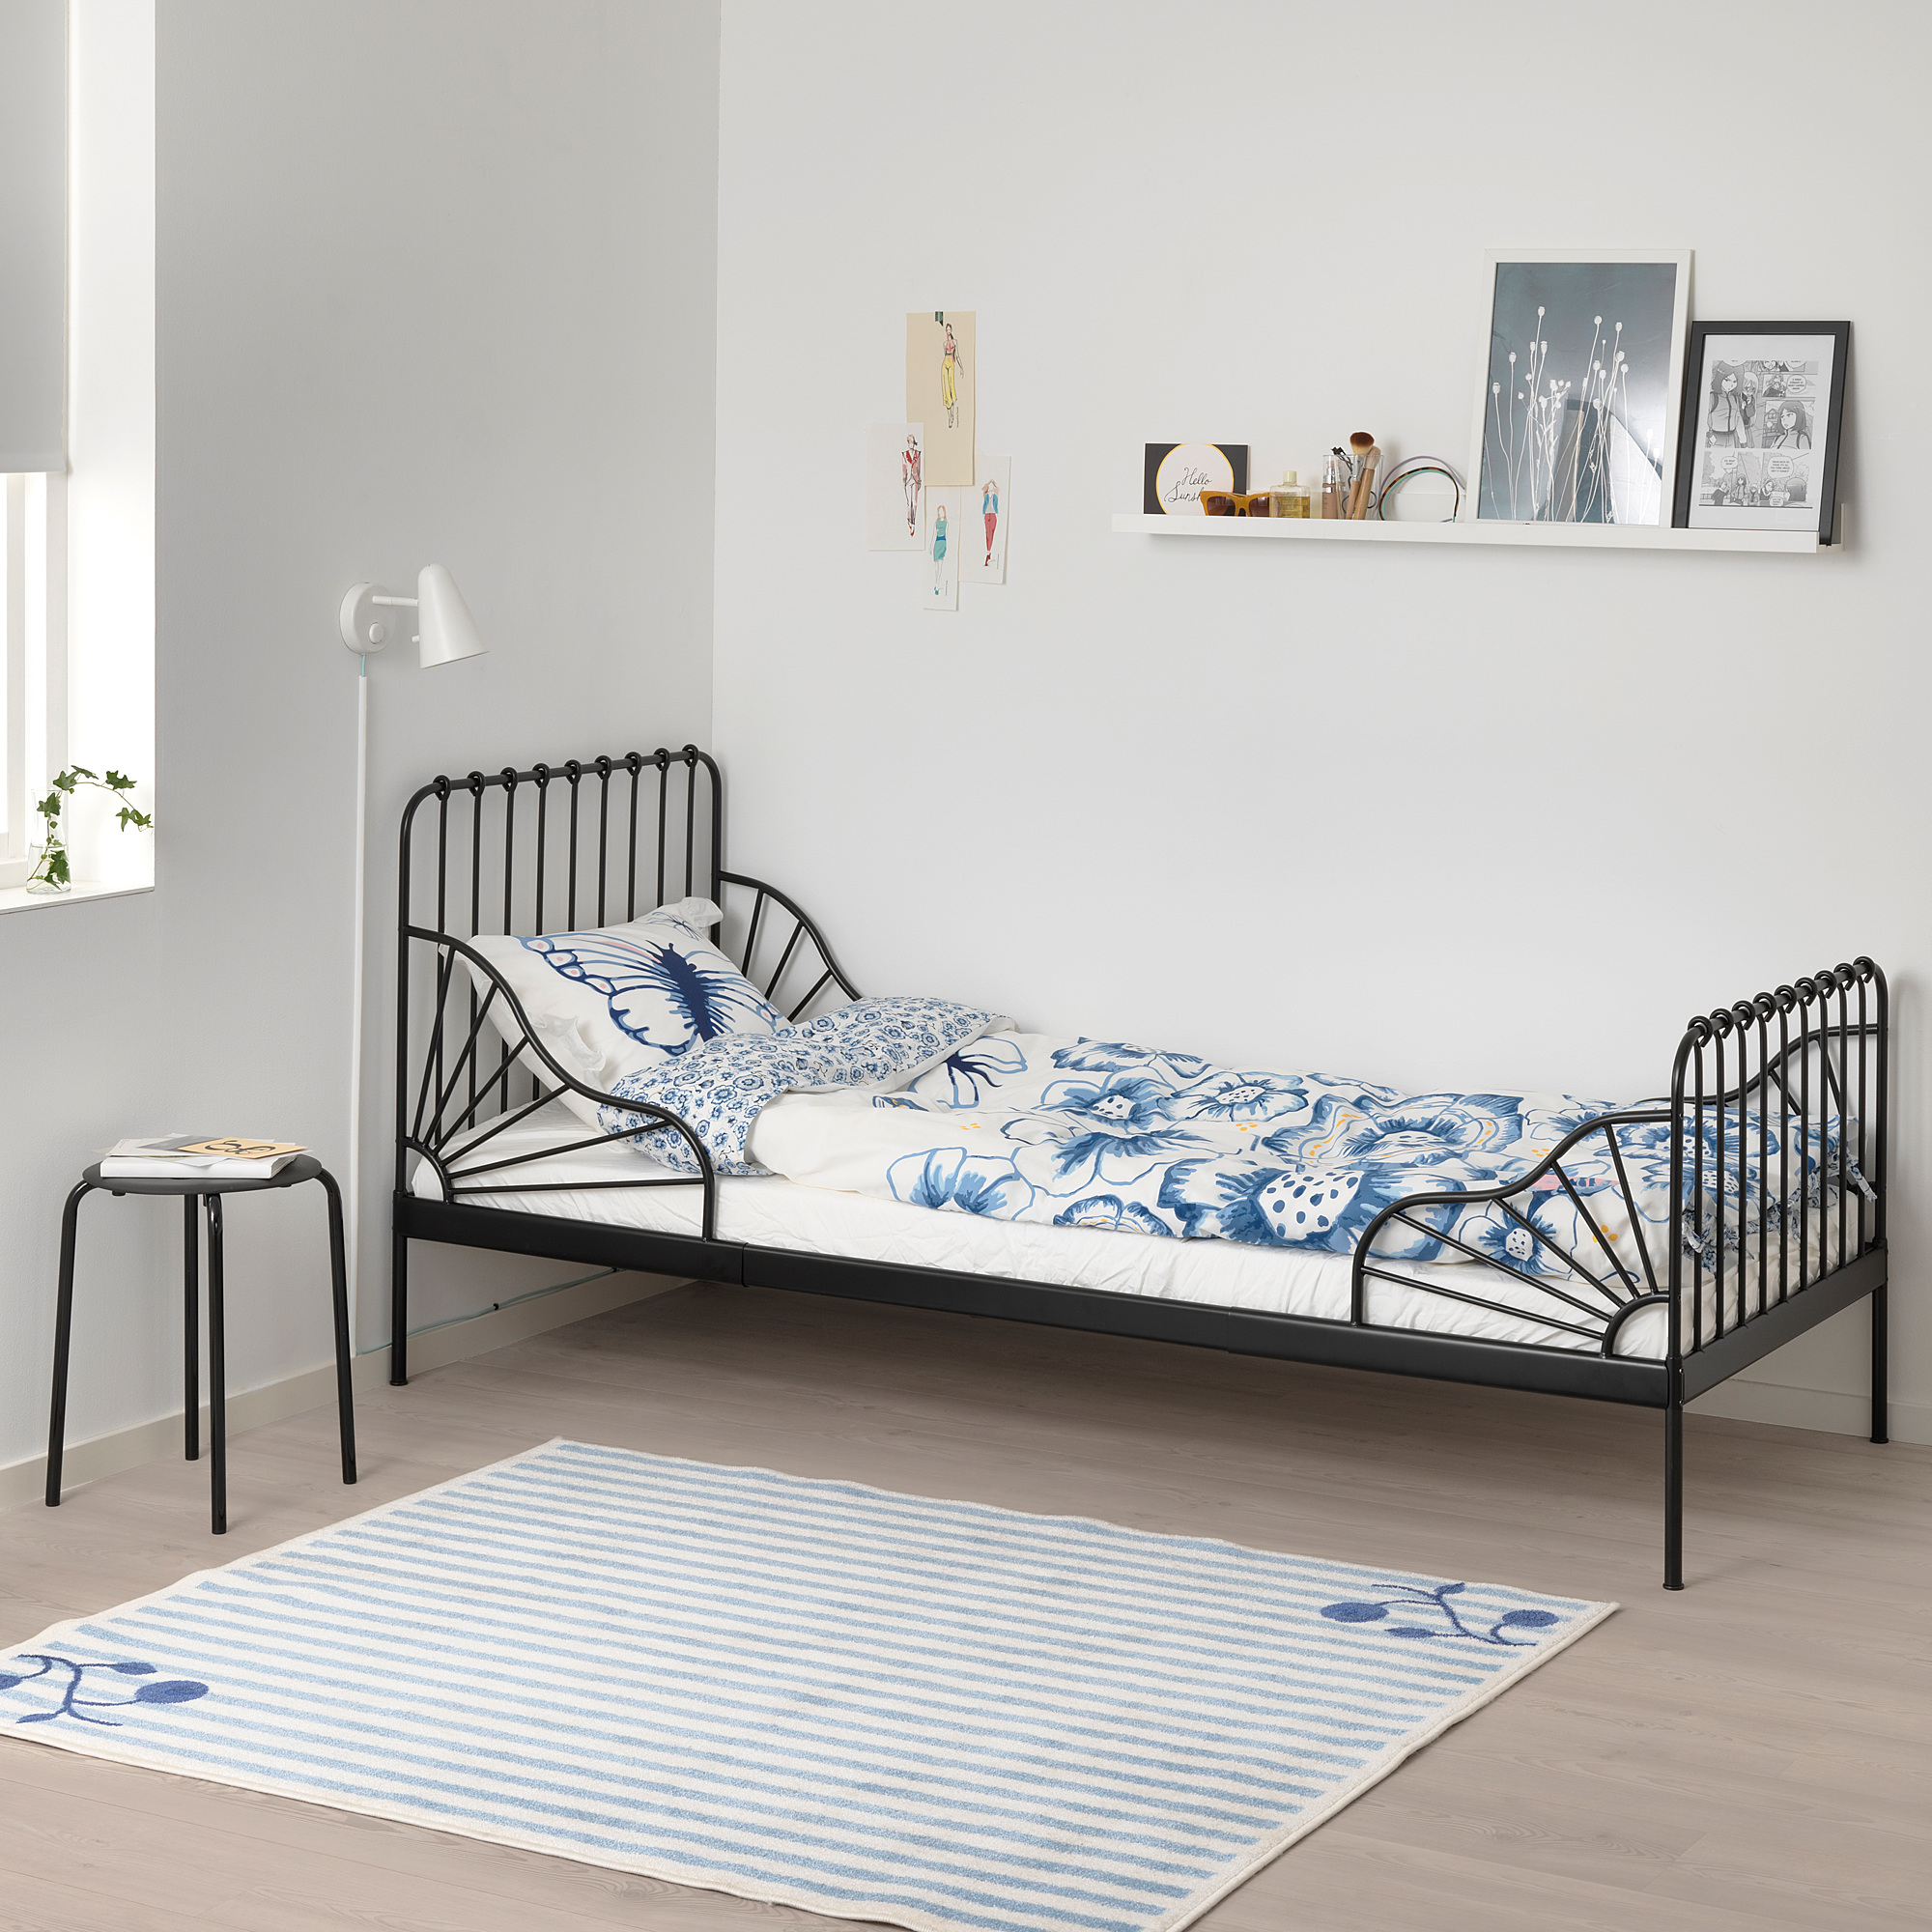 IKEA Minnen Extendable Beds